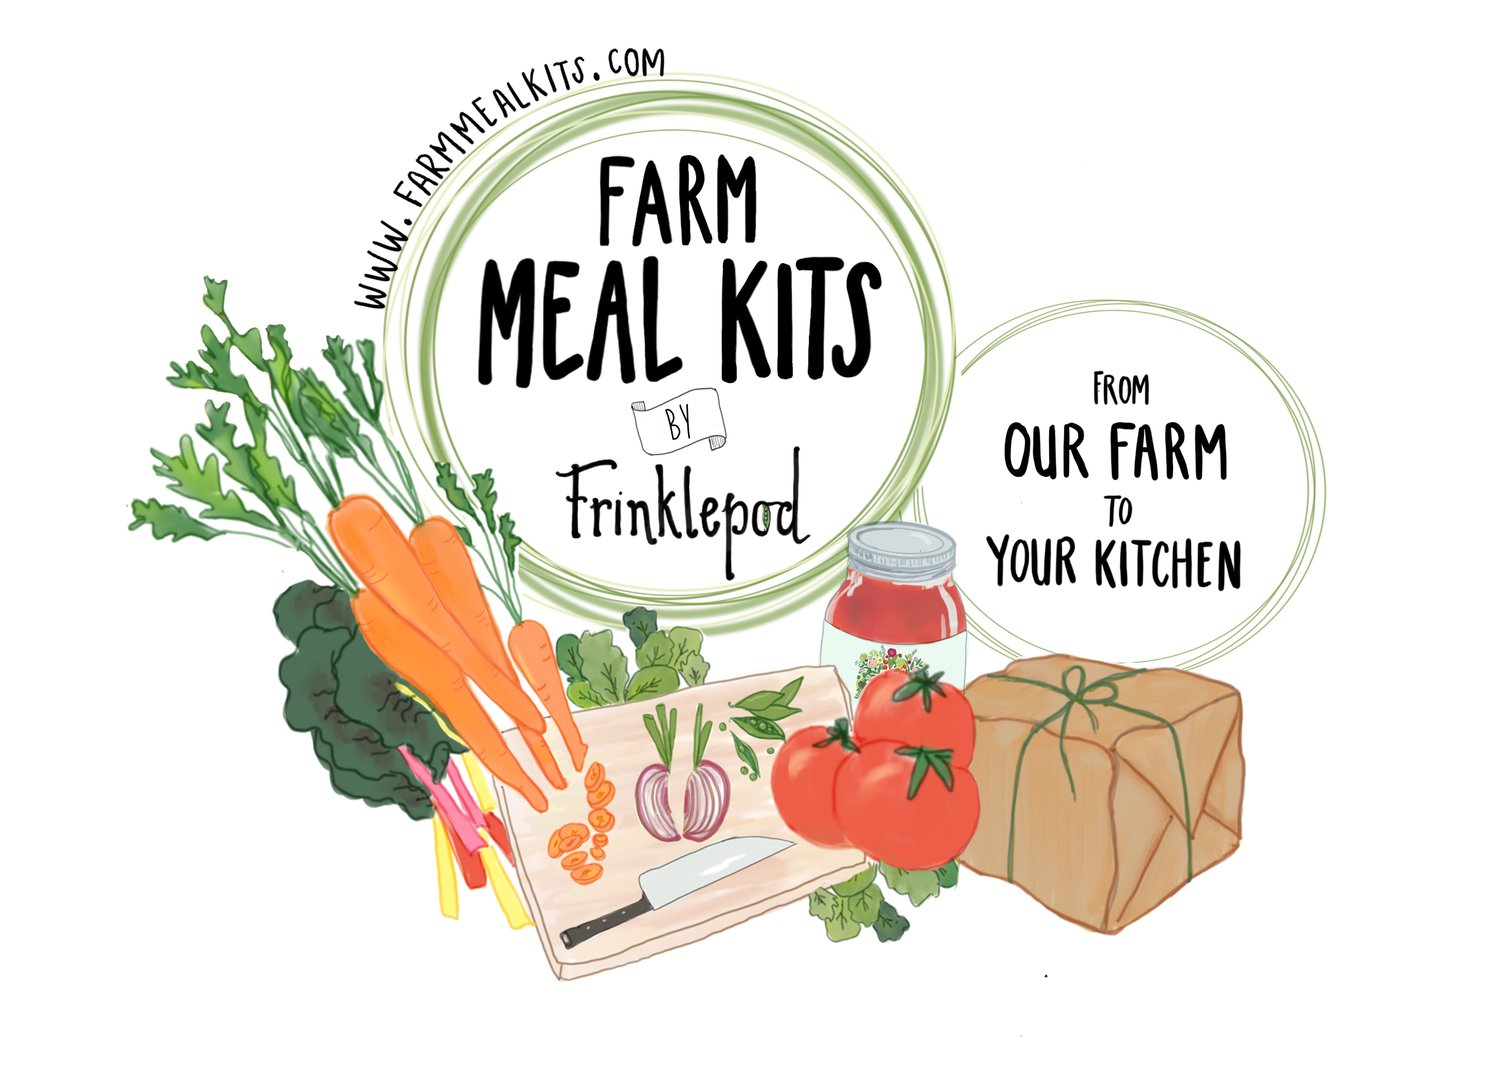 Farm Meal Kits by Frinklepod